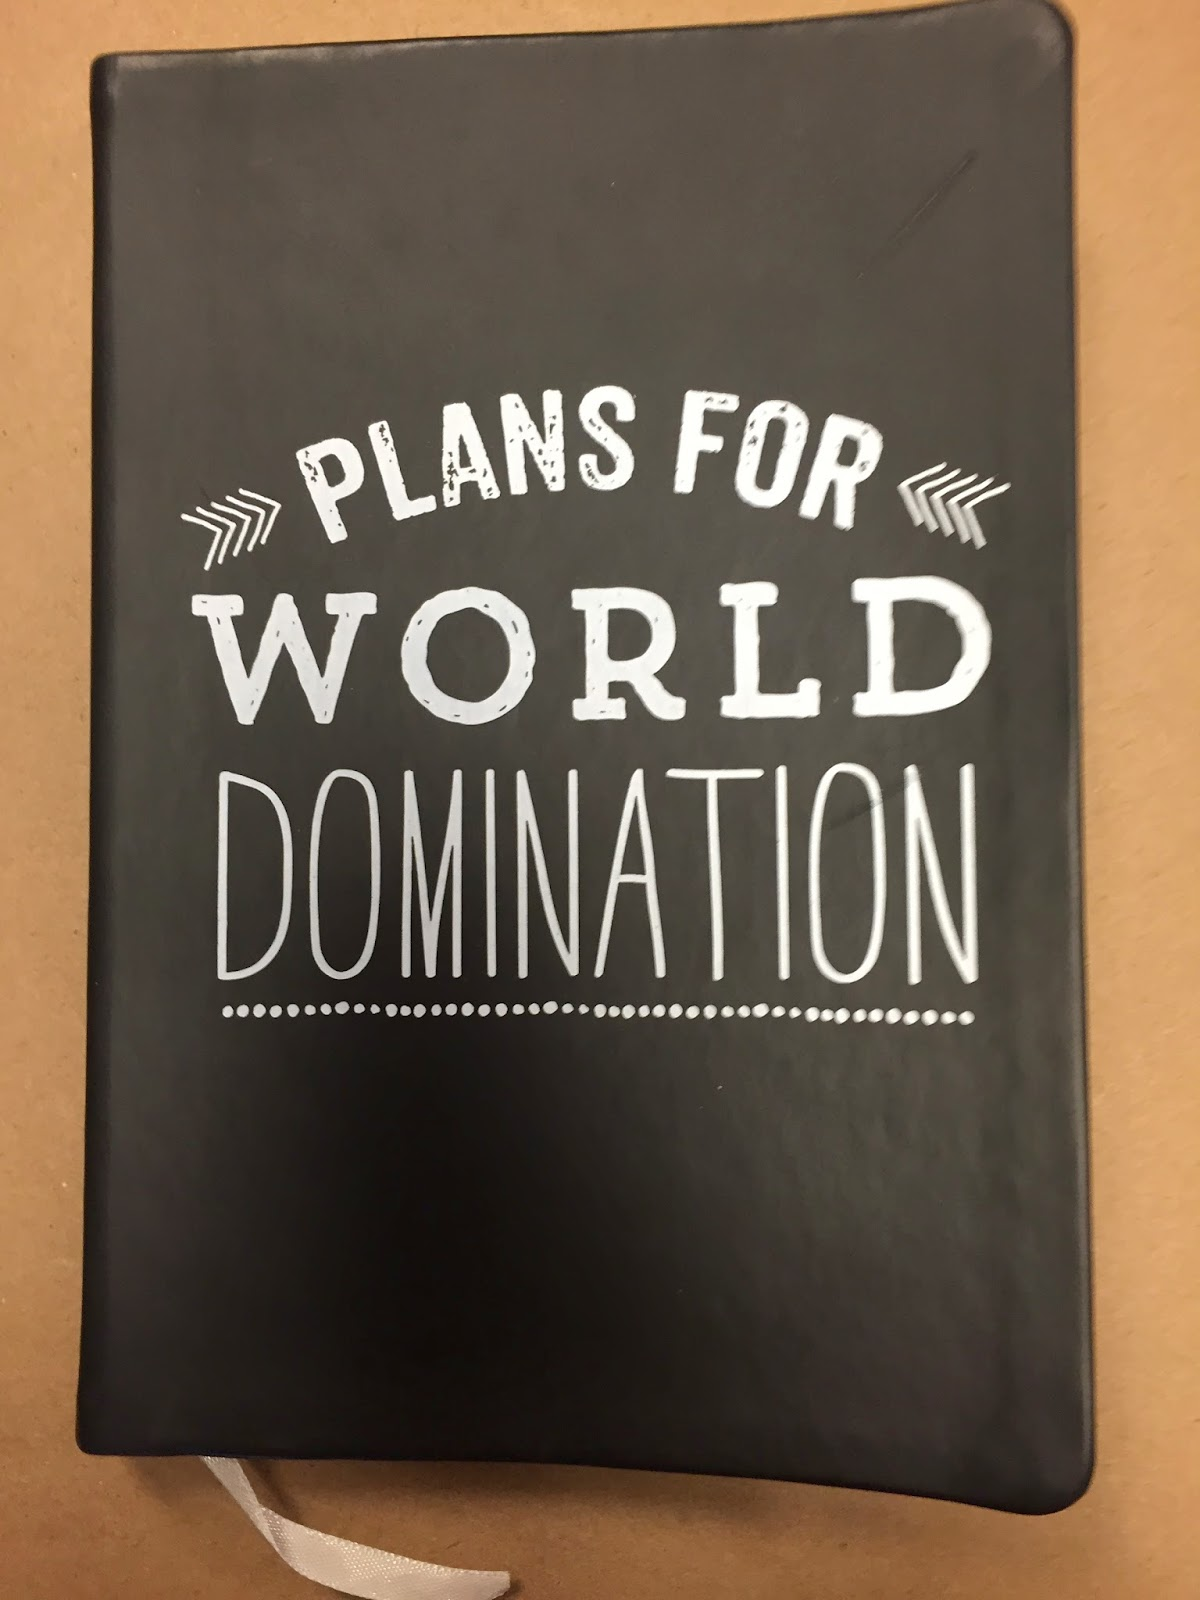 And thought. the chinese plan for world domination